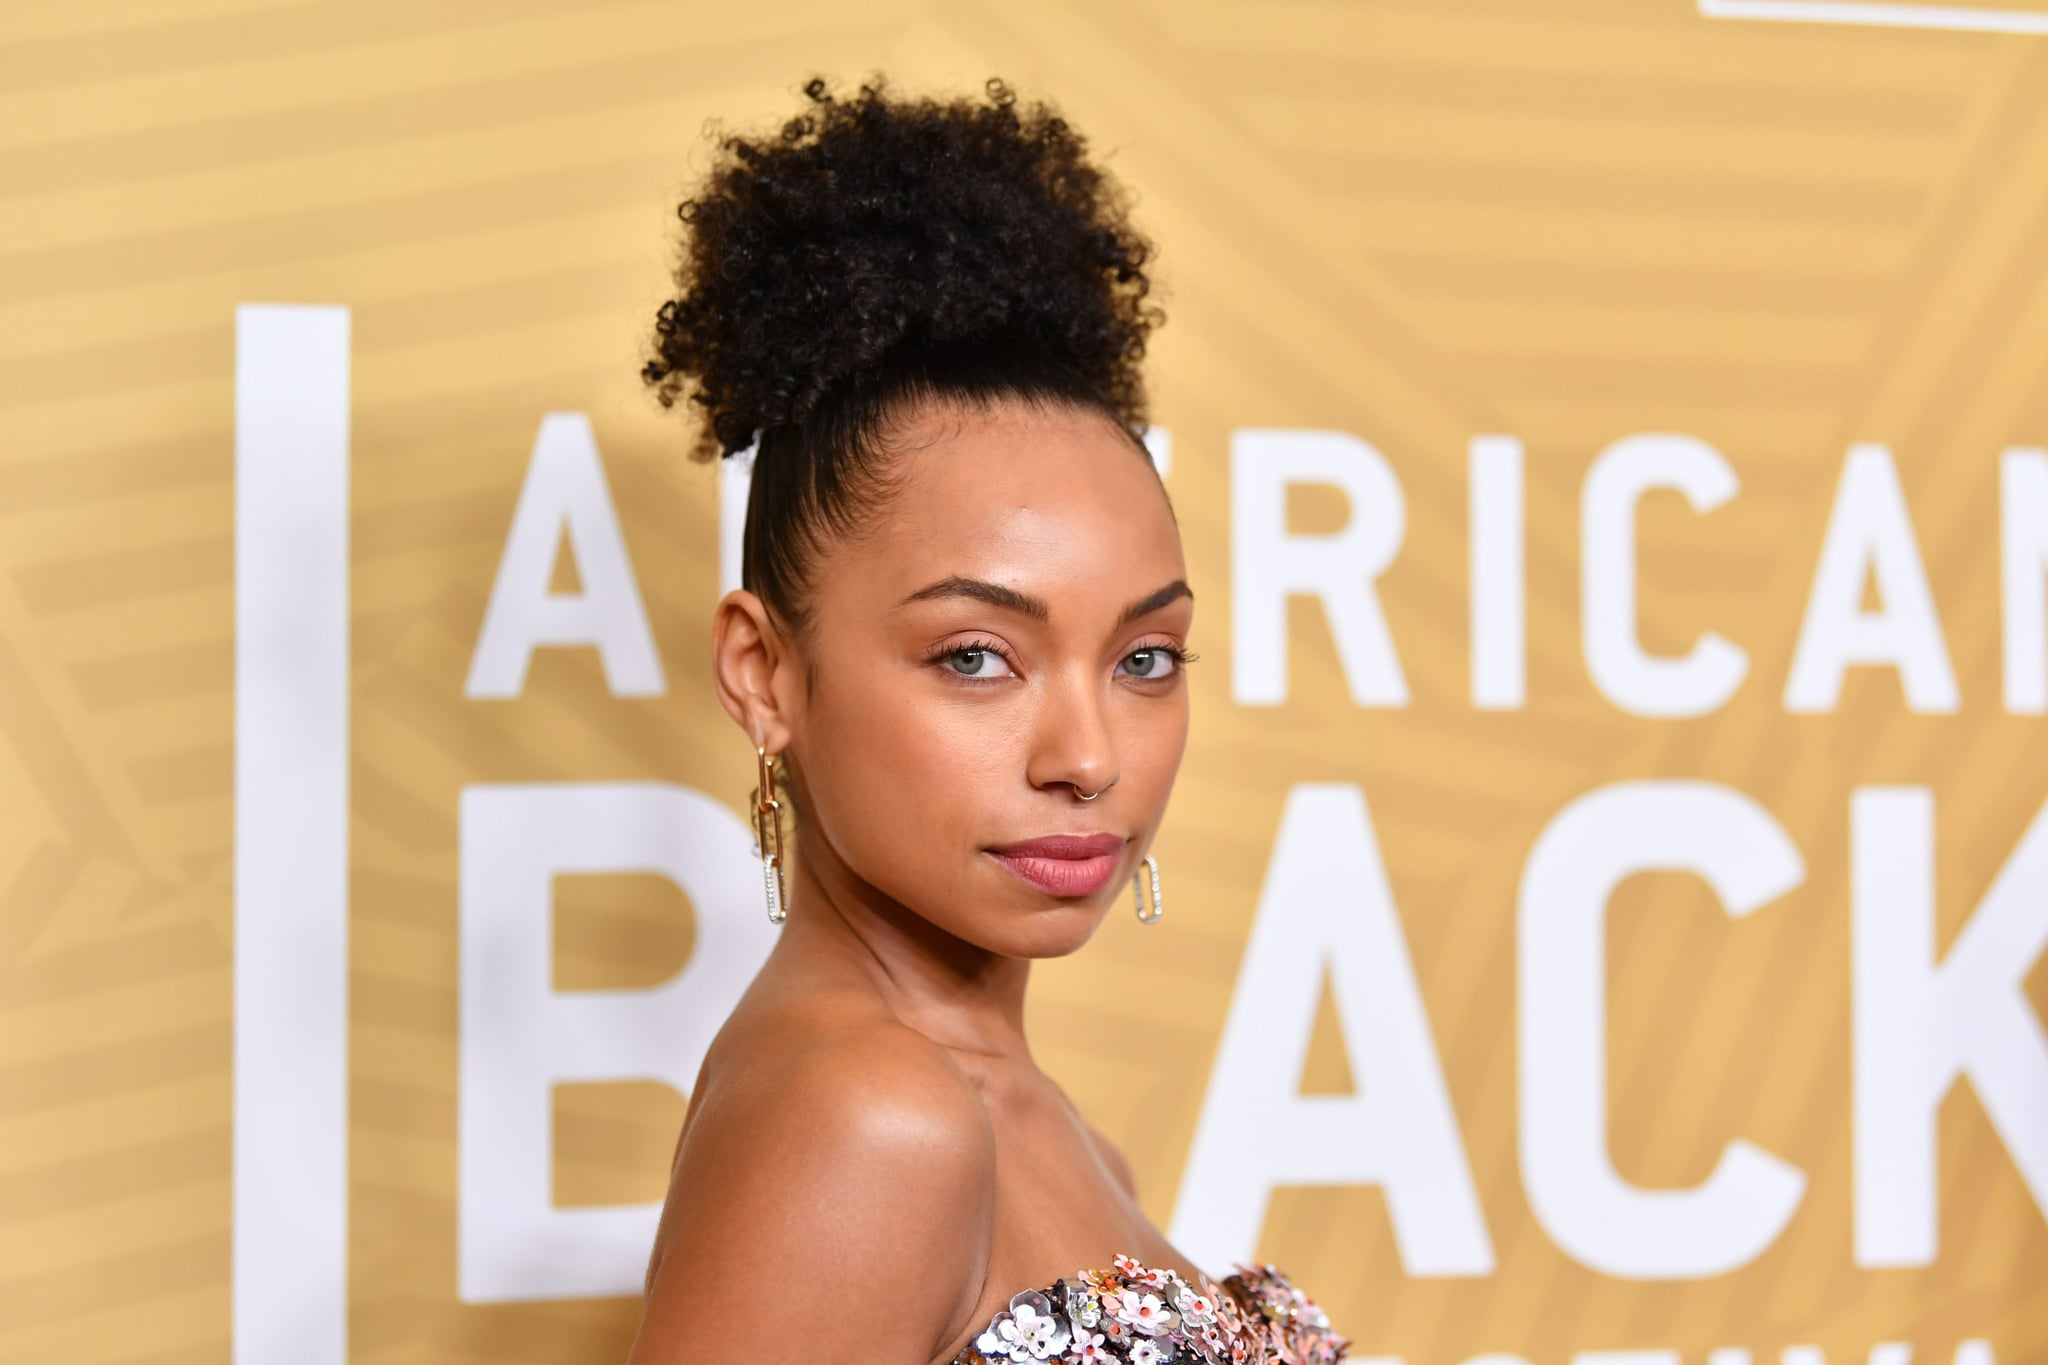 BEVERLY HILLS, CALIFORNIA - FEBRUARY 23: Logan Browning attends the American Black Film Festival Honors Awards Ceremony at The Beverly Hilton Hotel on February 23, 2020 in Beverly Hills, California. (Photo by Amy Sussman/Getty Images)